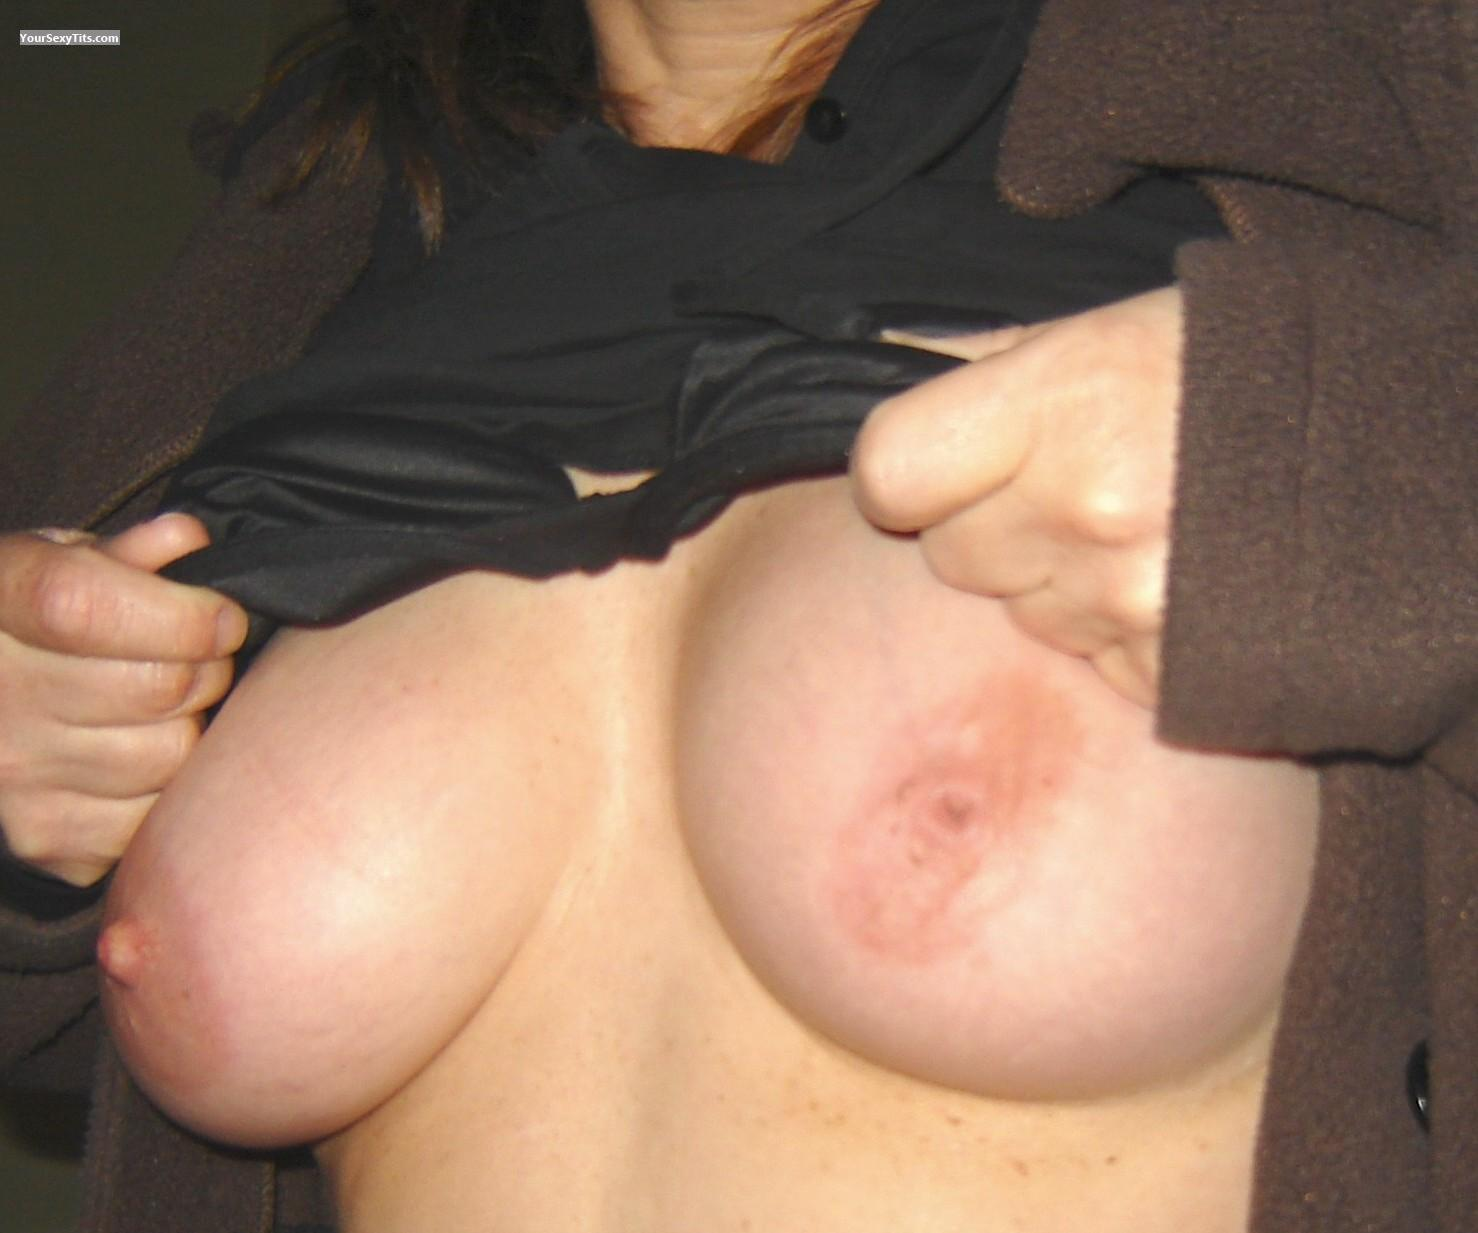 Tit Flash: Medium Tits - Bubs from United States